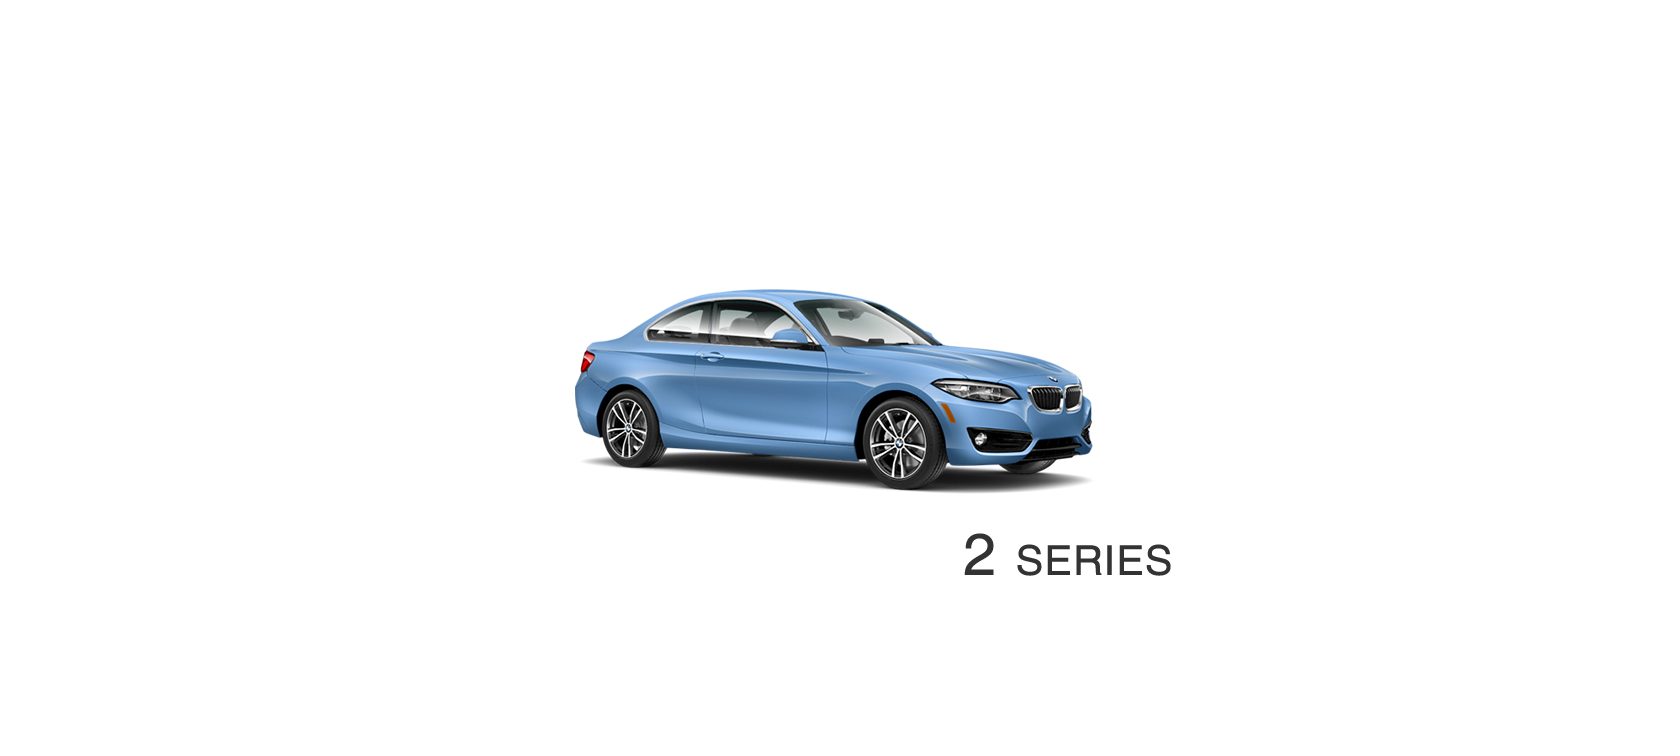 BMW 2 Series | Headlight lens plastic covers